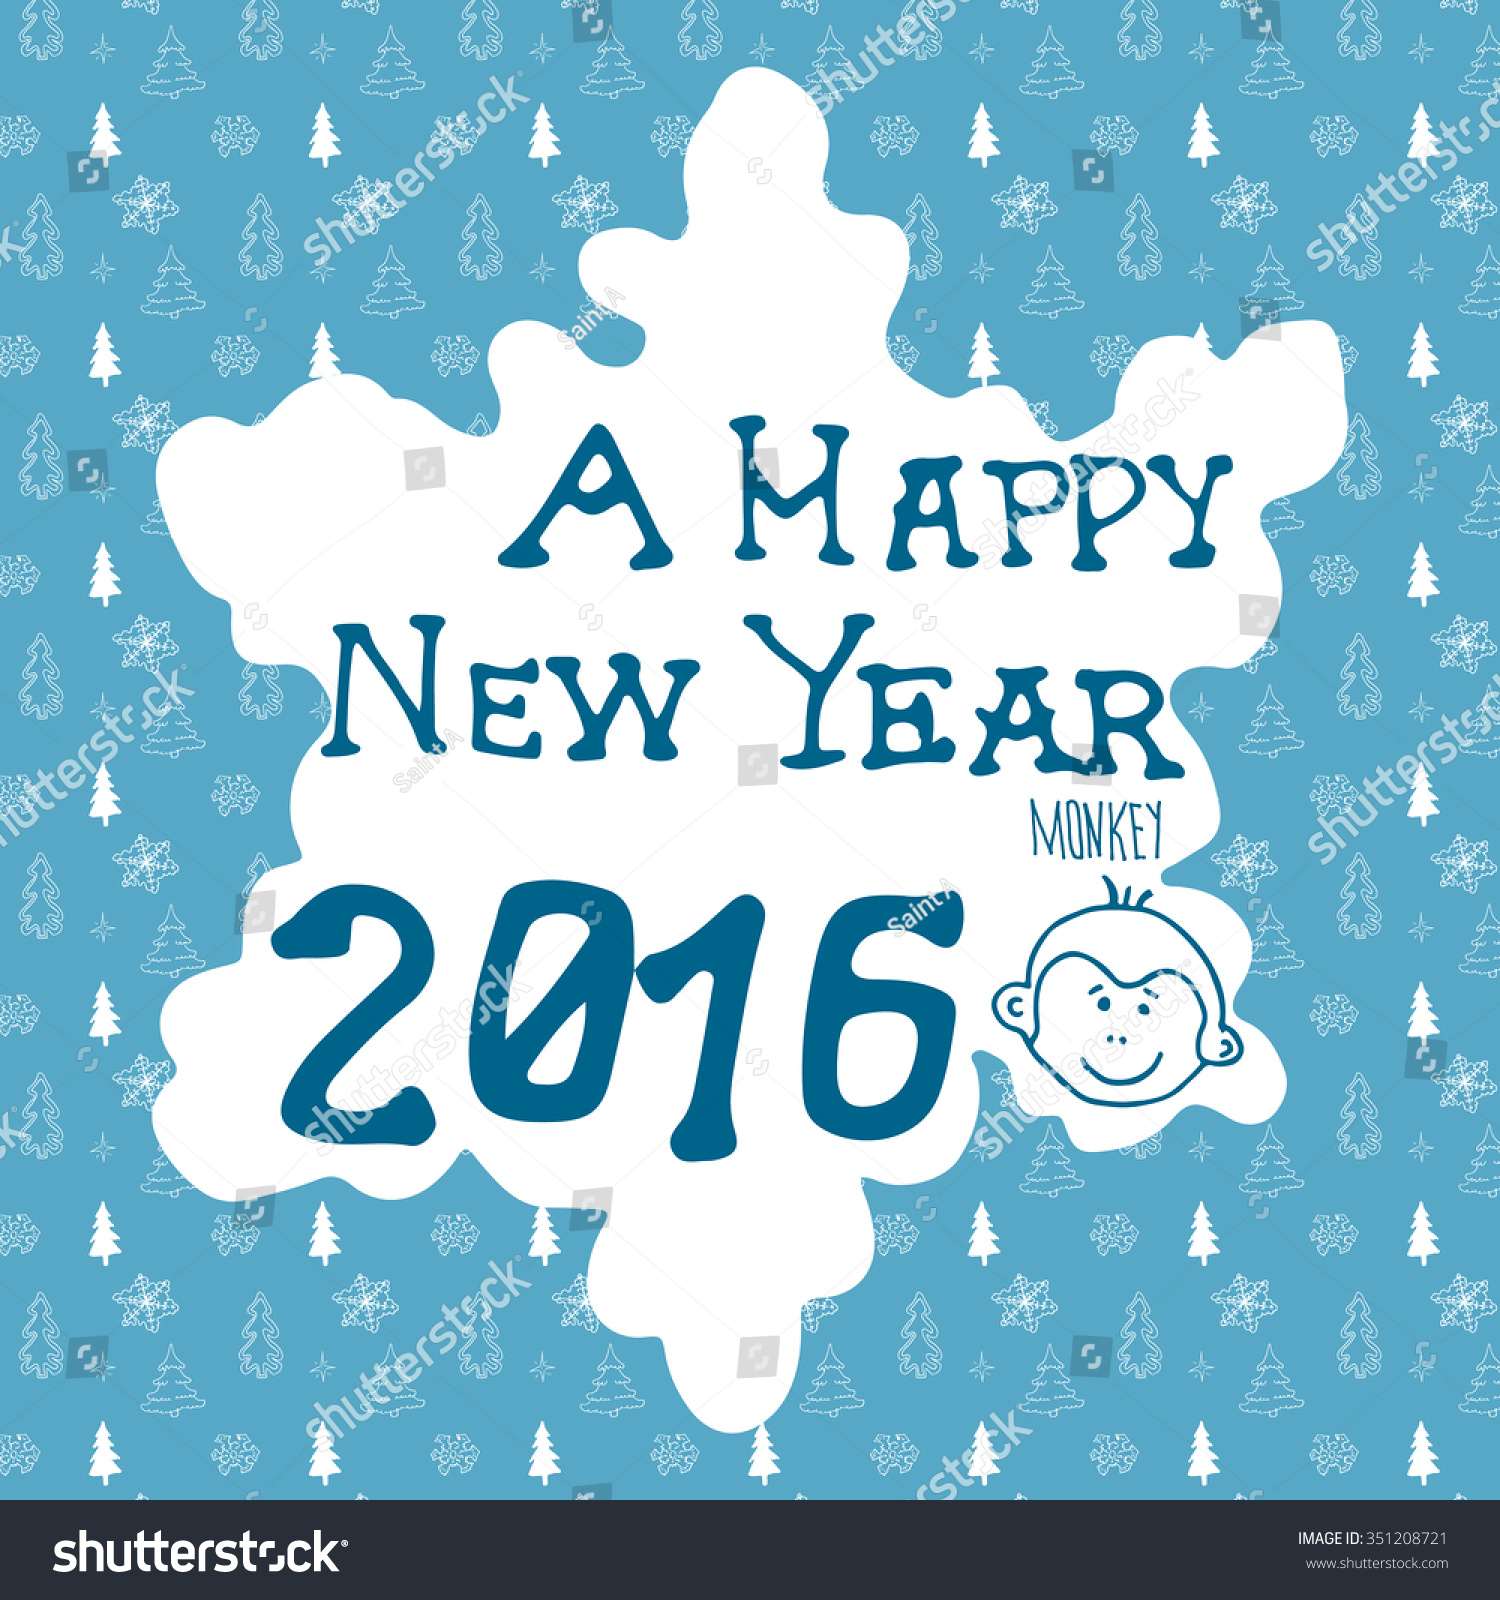 Hand drawn sketch design happy new stock illustration 351208721 hand drawn sketch design of happy new year 2016 greeting card doodles with lettering kristyandbryce Image collections